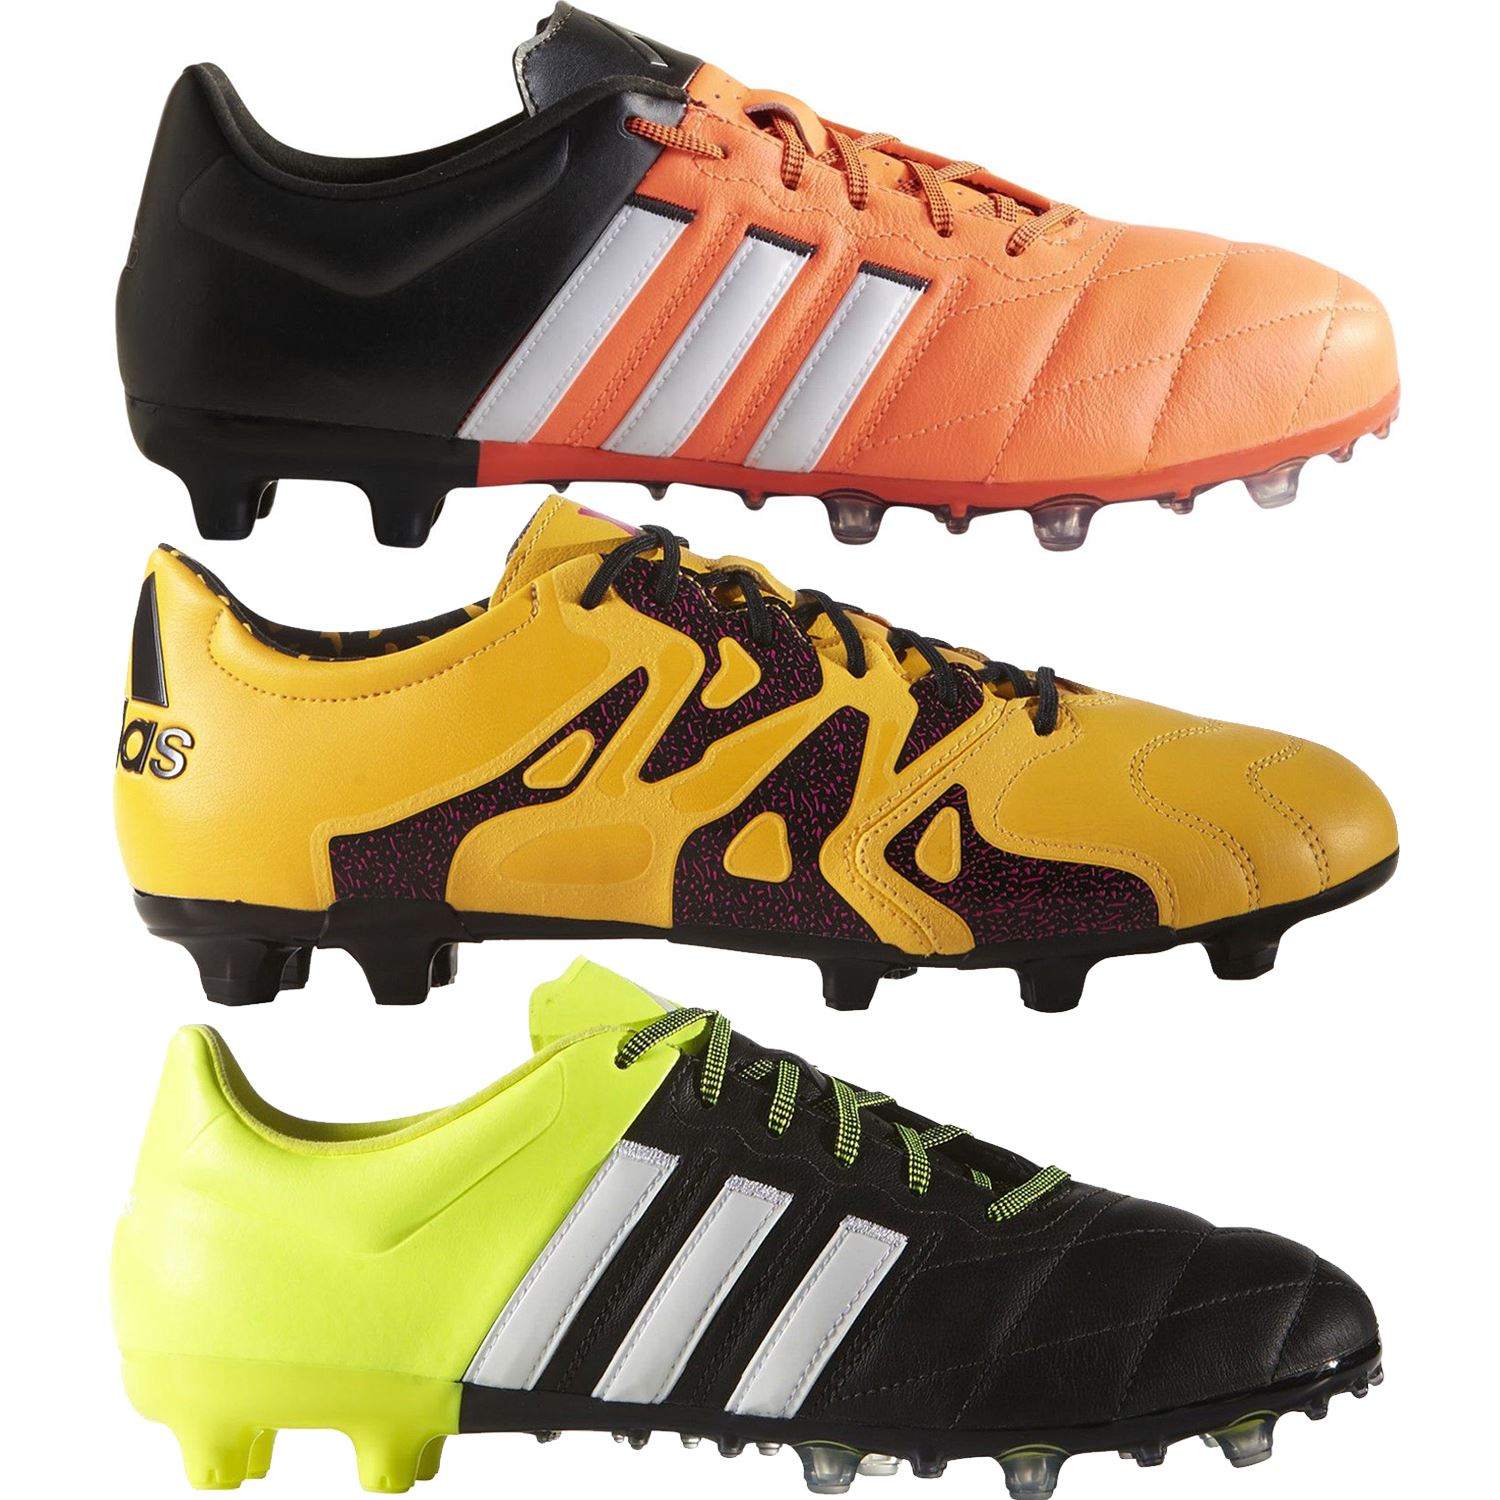 cb7852c24 Details about adidas FOOTBALL BOOTS UK 6 - 12 ACE X 15.2 LEATHER FIRM  GROUND SOCCER MEN S